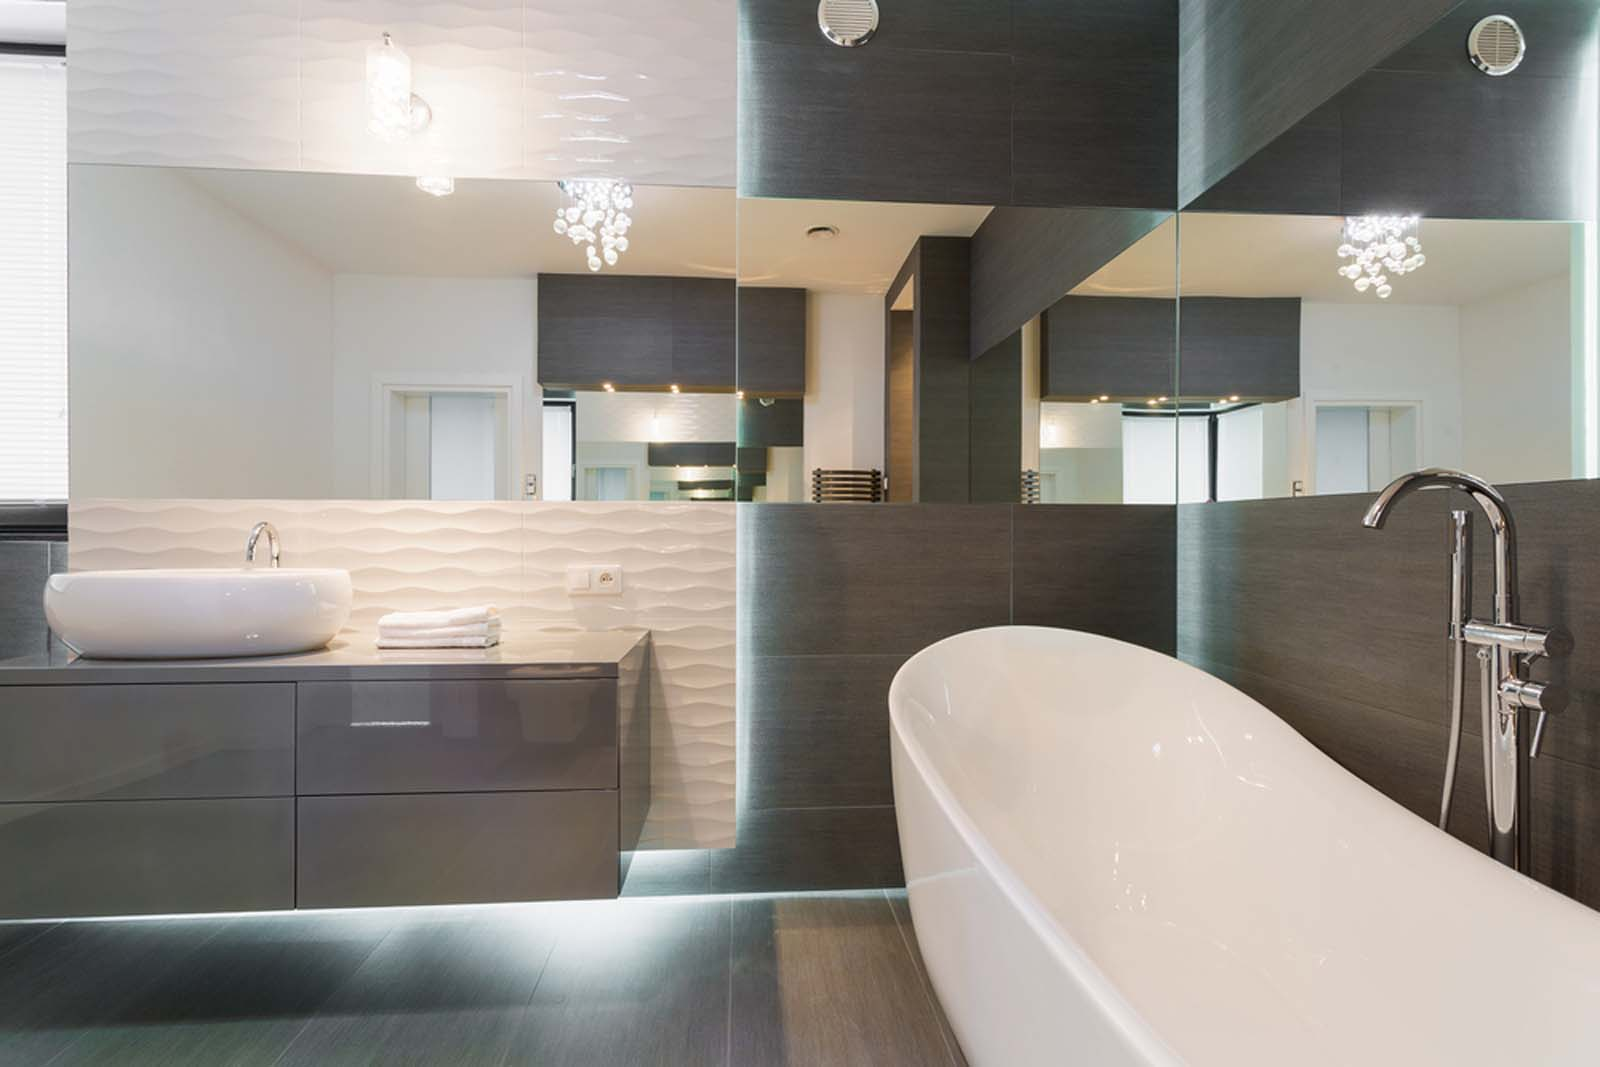 Innovate and Renovate for a Pleasant Bathroom Experience